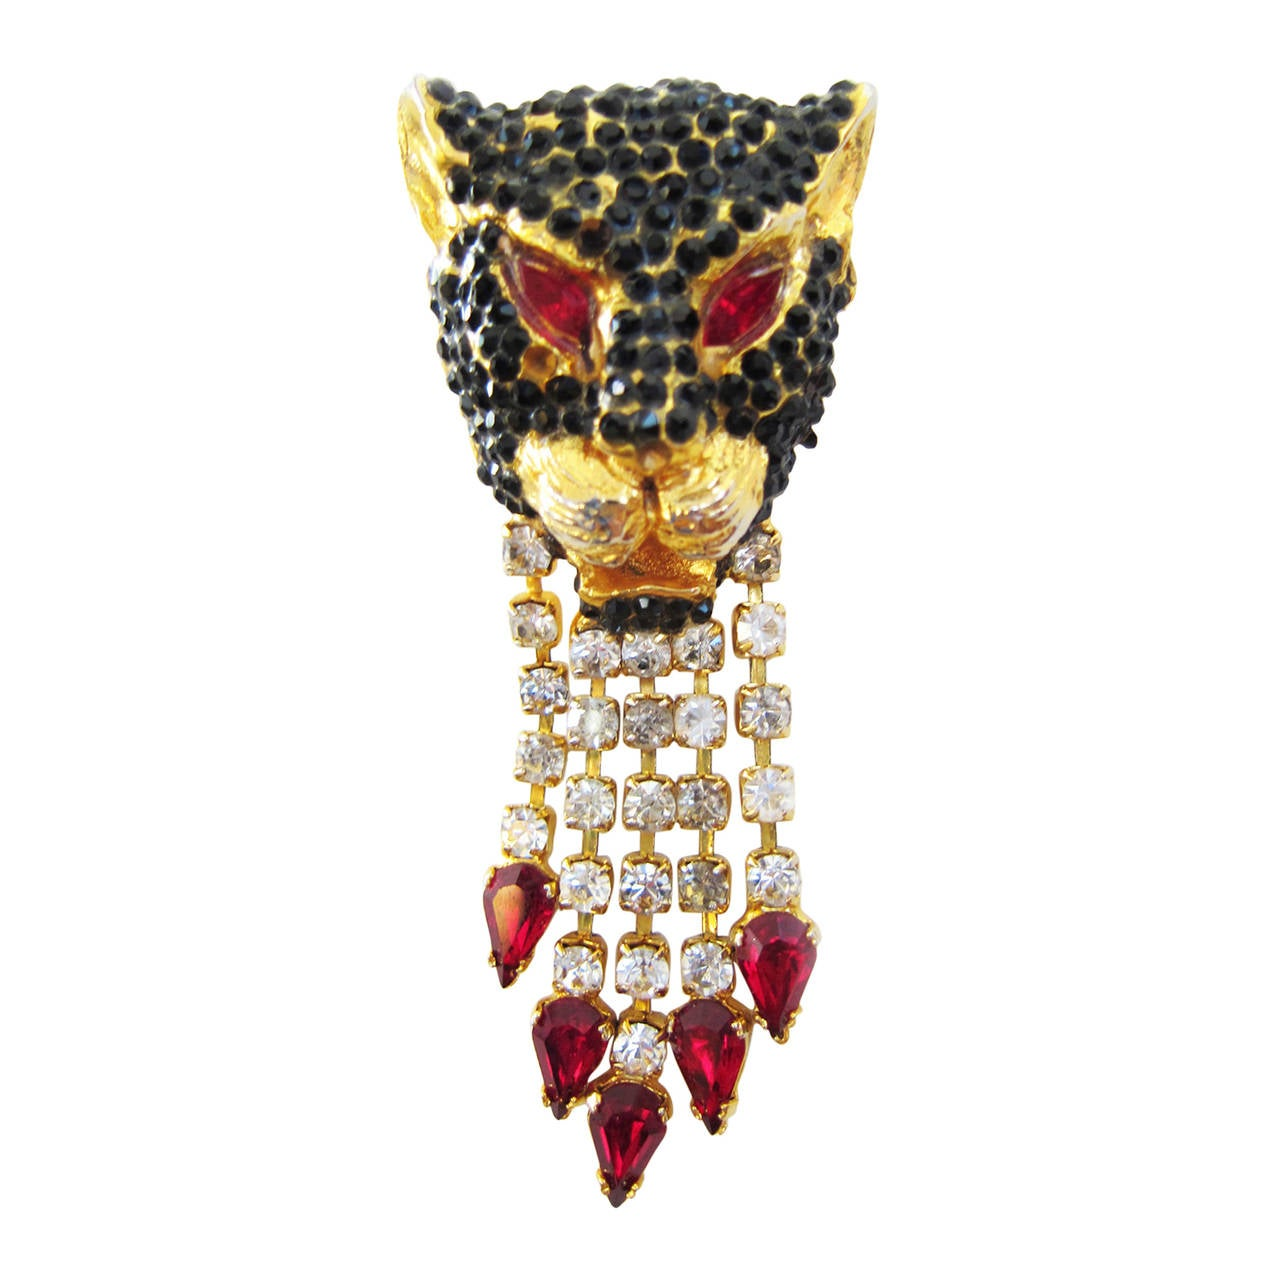 Gianni Versace Black Panther Pendent Head Clip 1990's For Sale